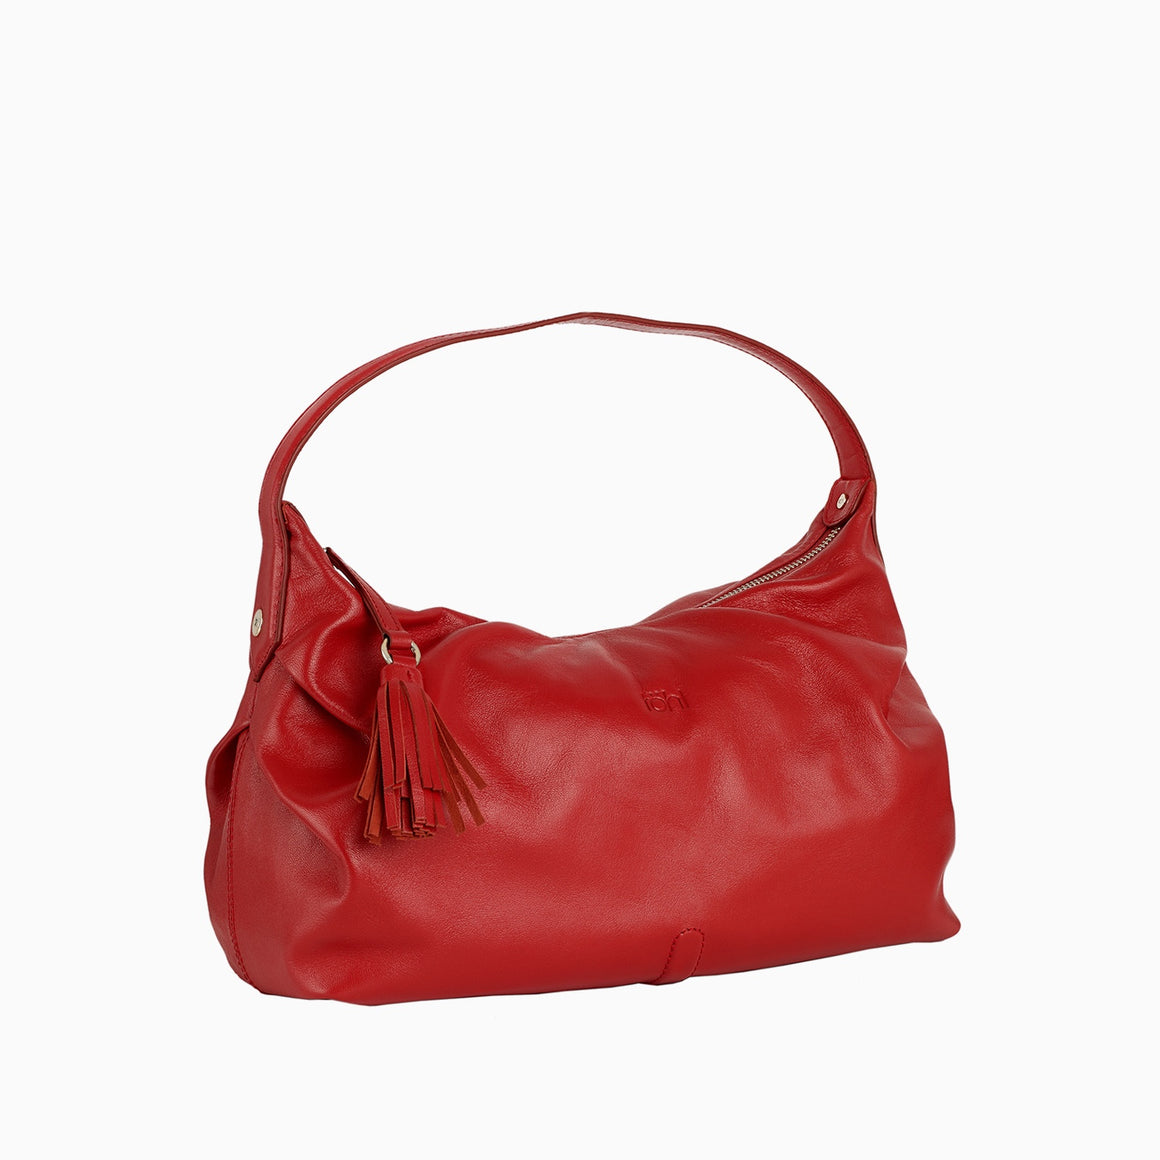 HH 0001 - TOHL TINSLEY WOMEN'S SHOULDER  BAGUETTE - SPICE RED